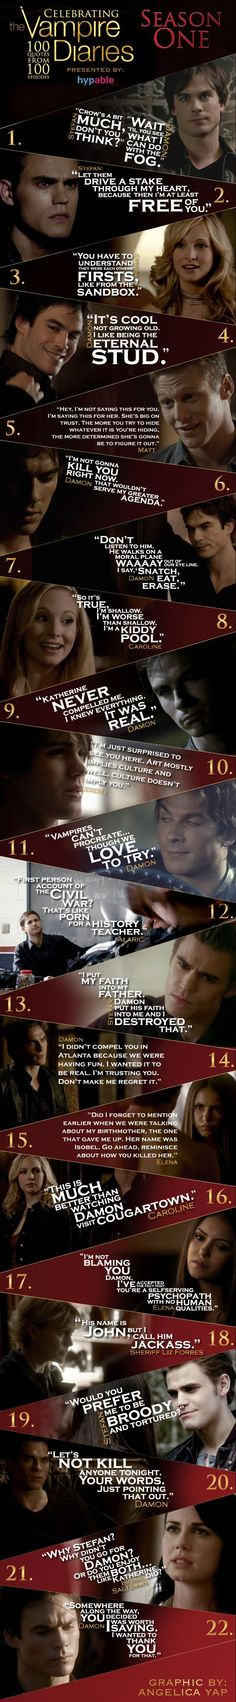 Famous TVD Quotes from Season 1 | Upsmash- Tv Shows, Communities, News, Spoilers